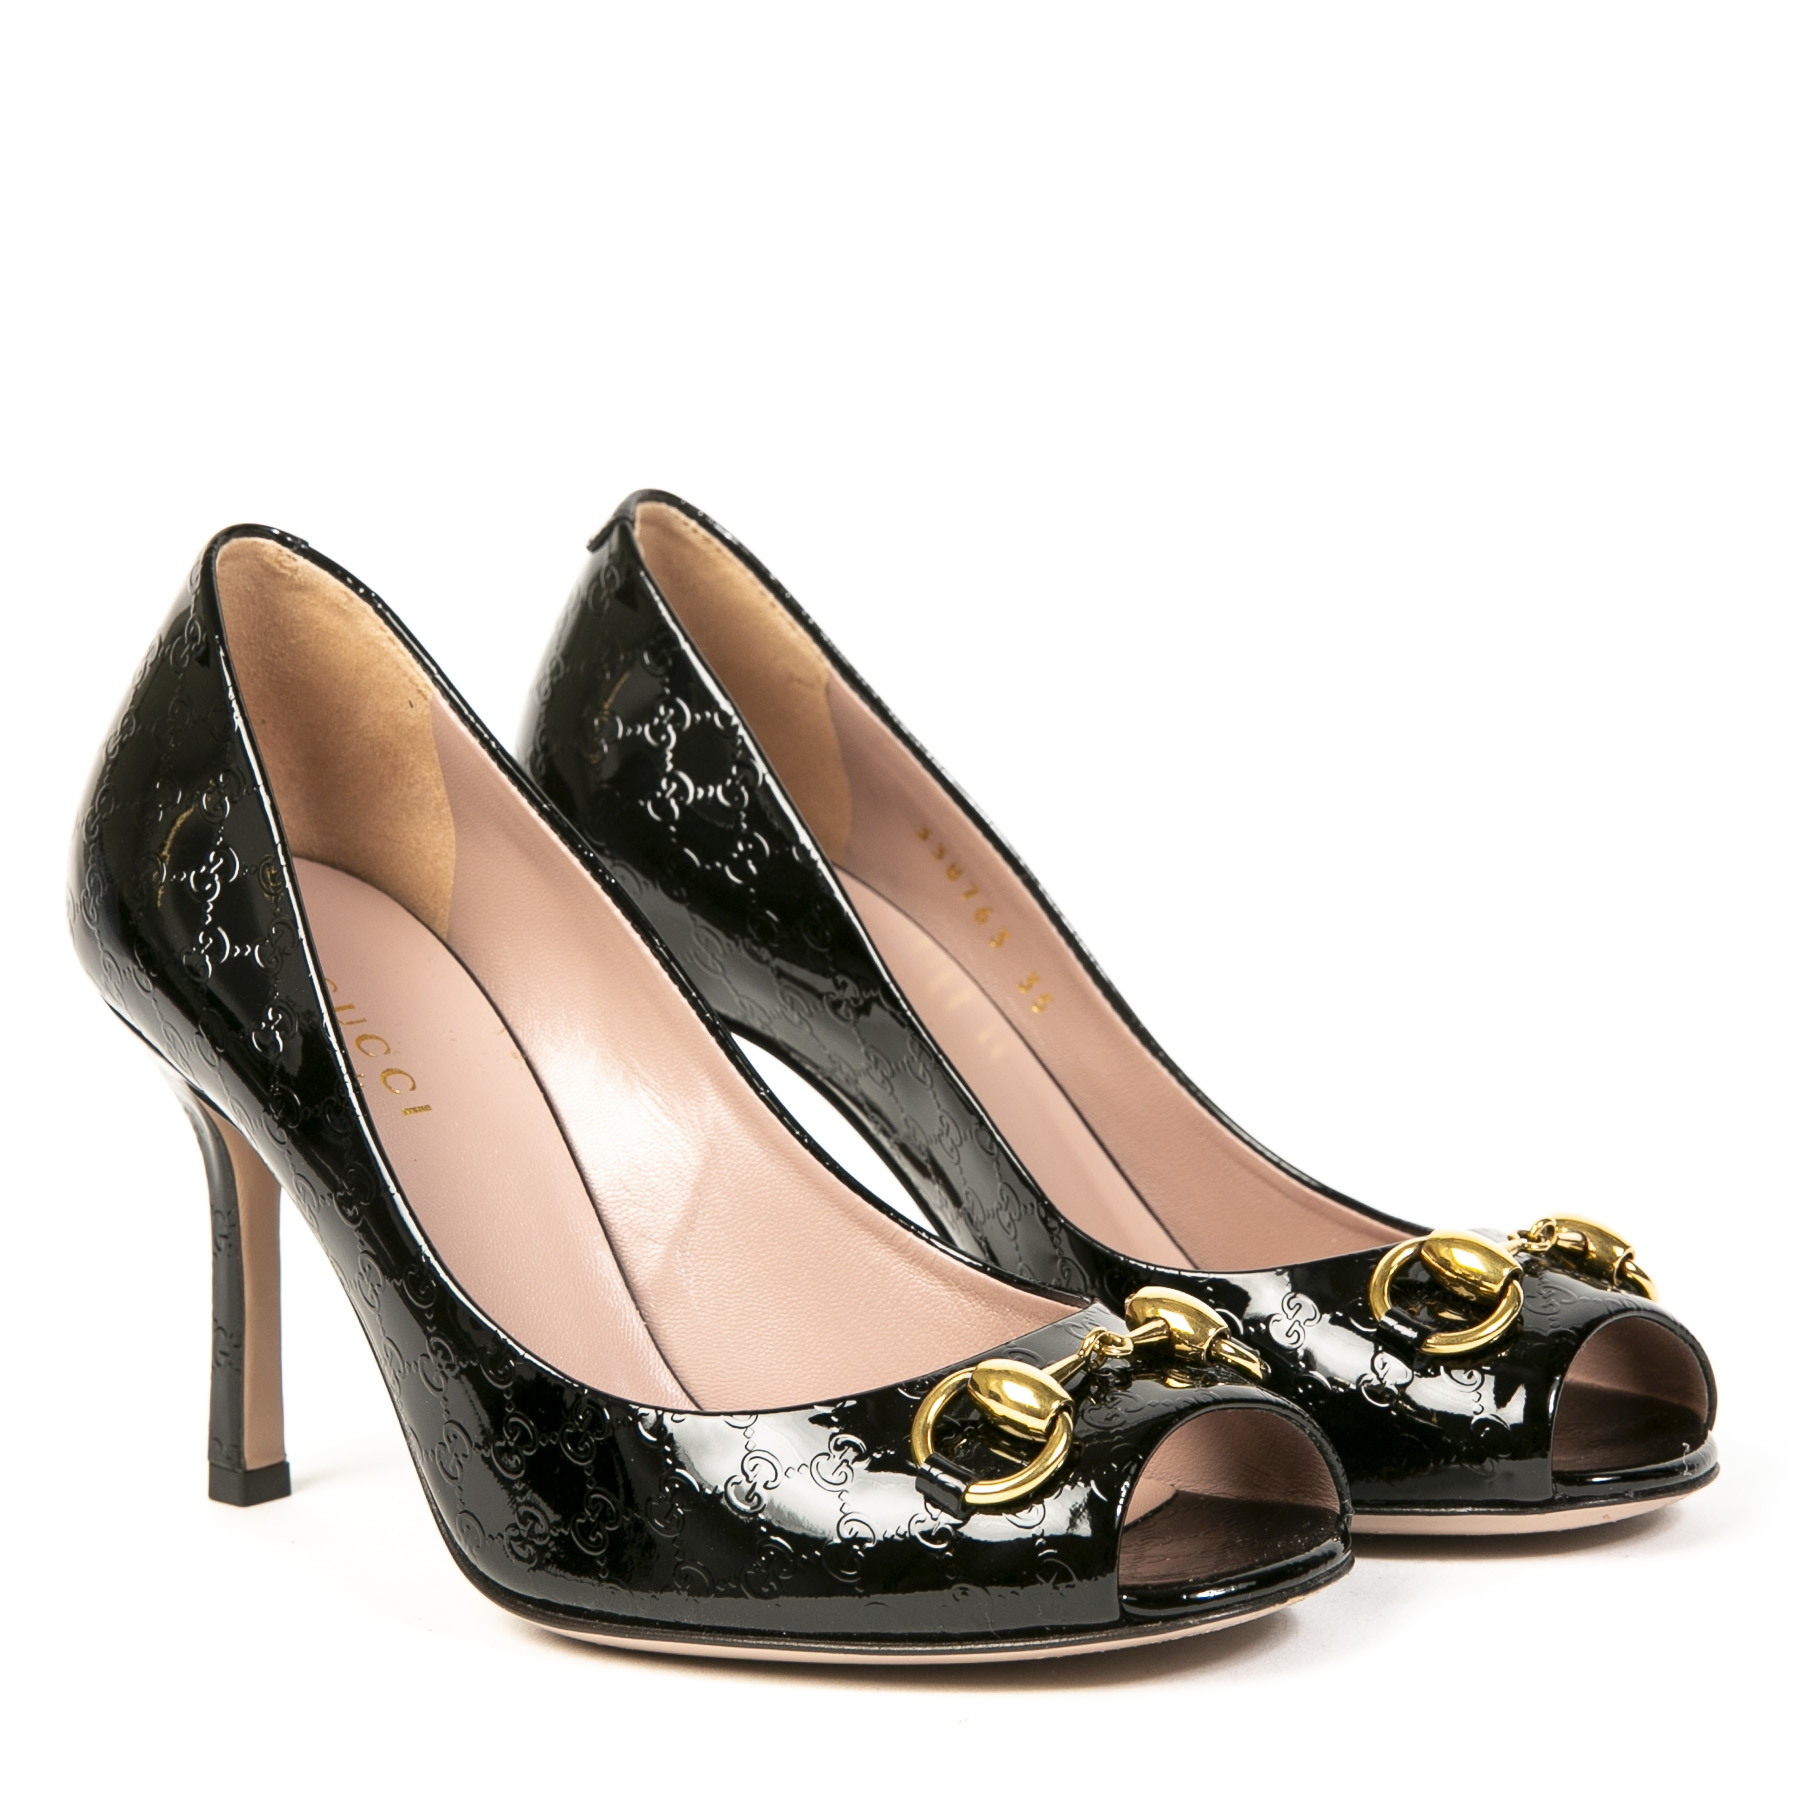 Gucci Black Monogram Patent Leather Horsebit Pumps